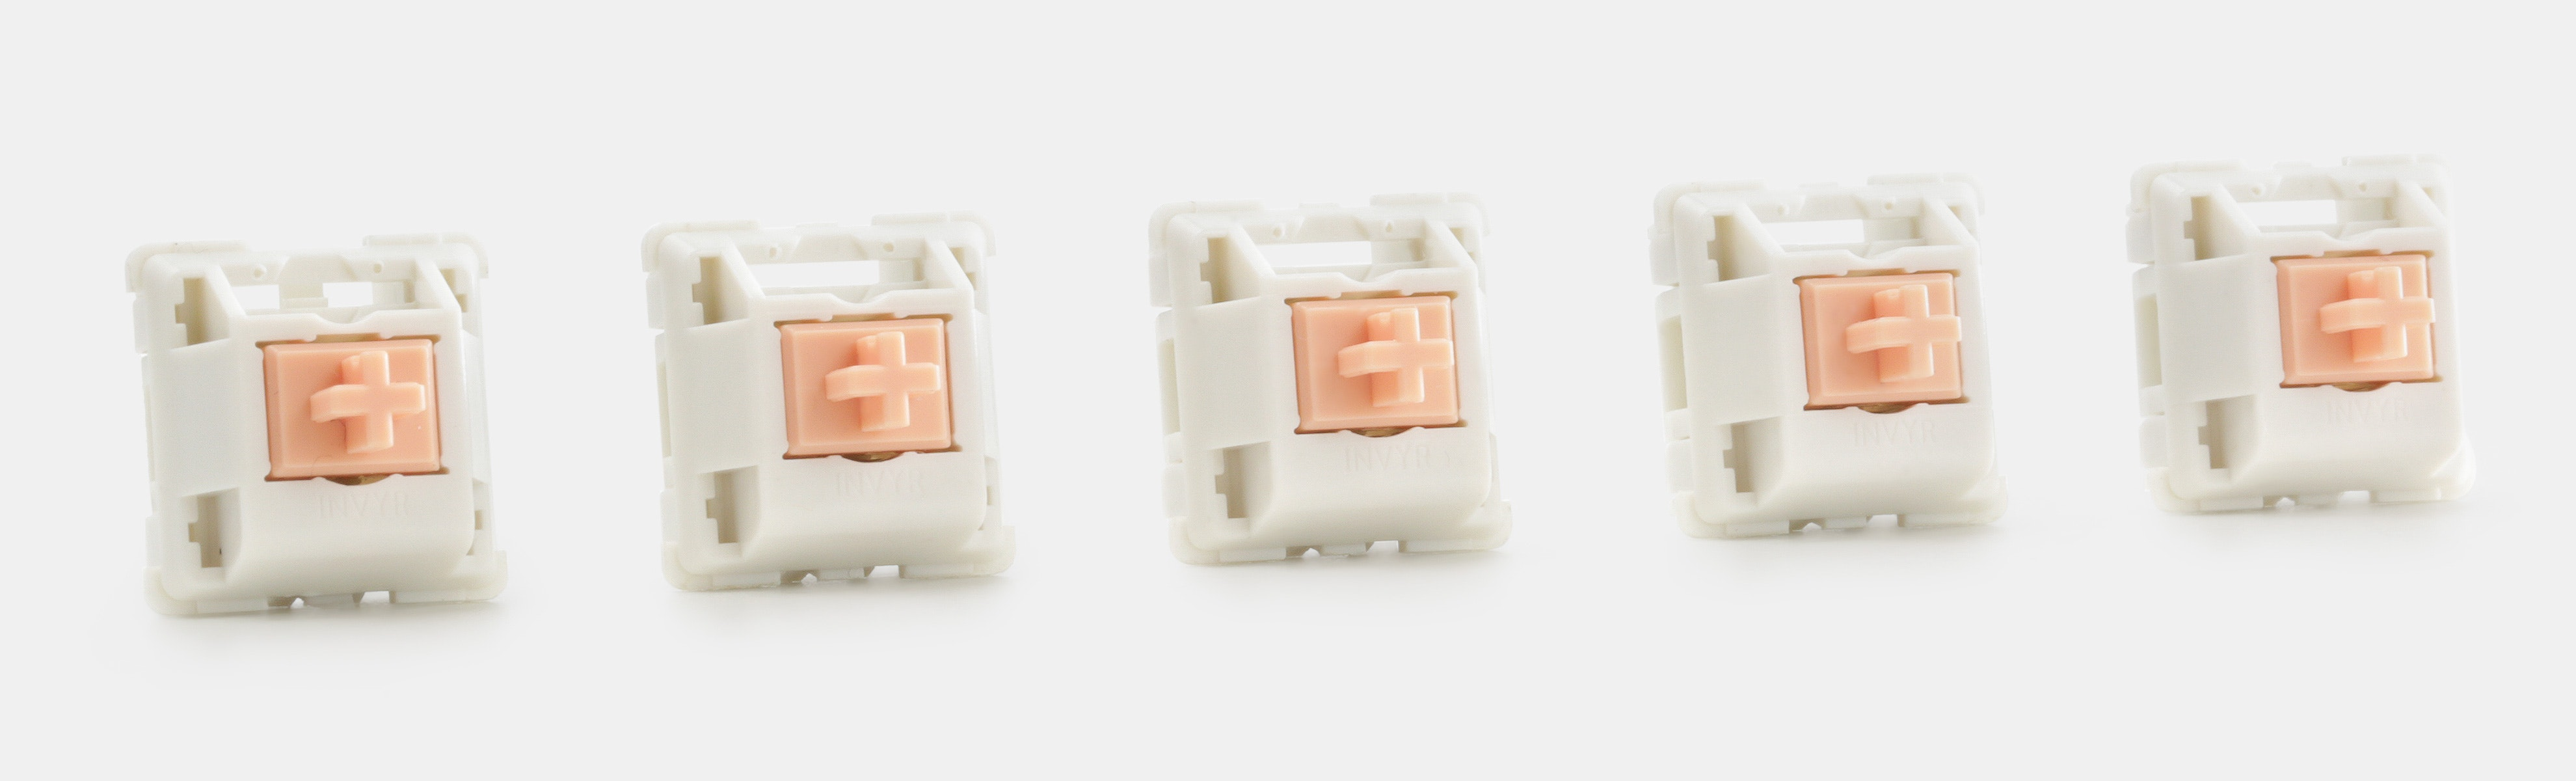 Massdrop x Invyr Holy Panda Mechanical Switches